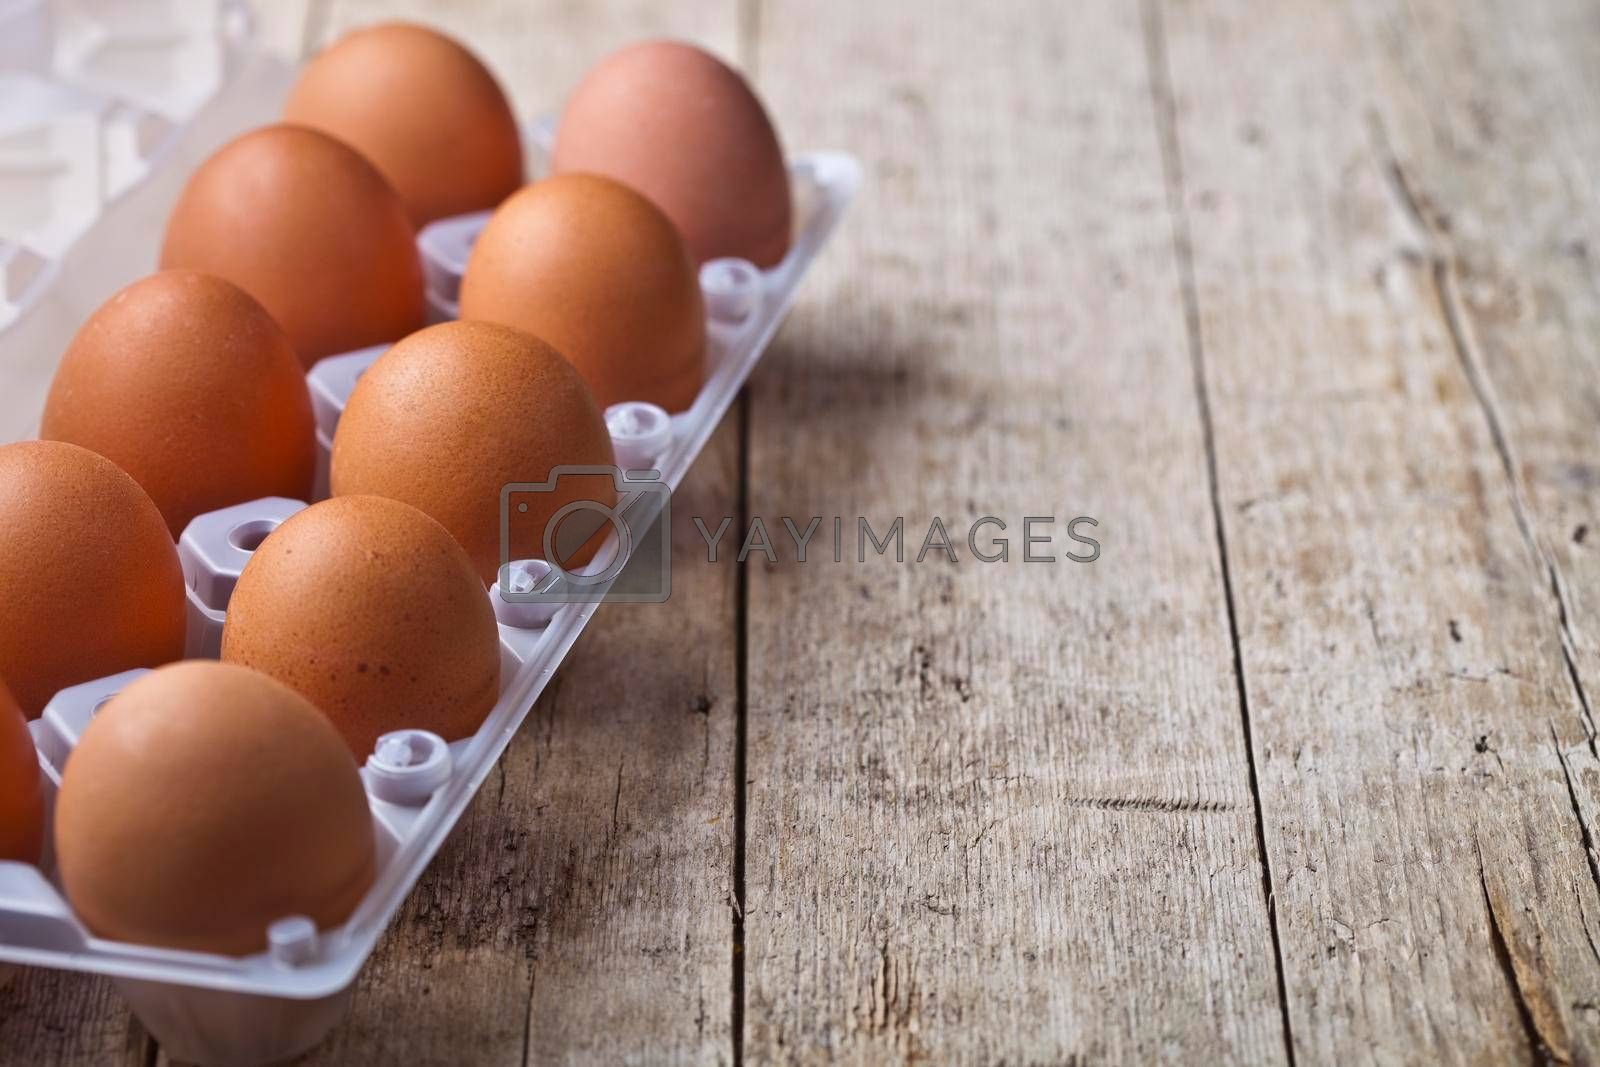 Fresh chicken eggs on plastic container on rustic wooden table background. With copy space.